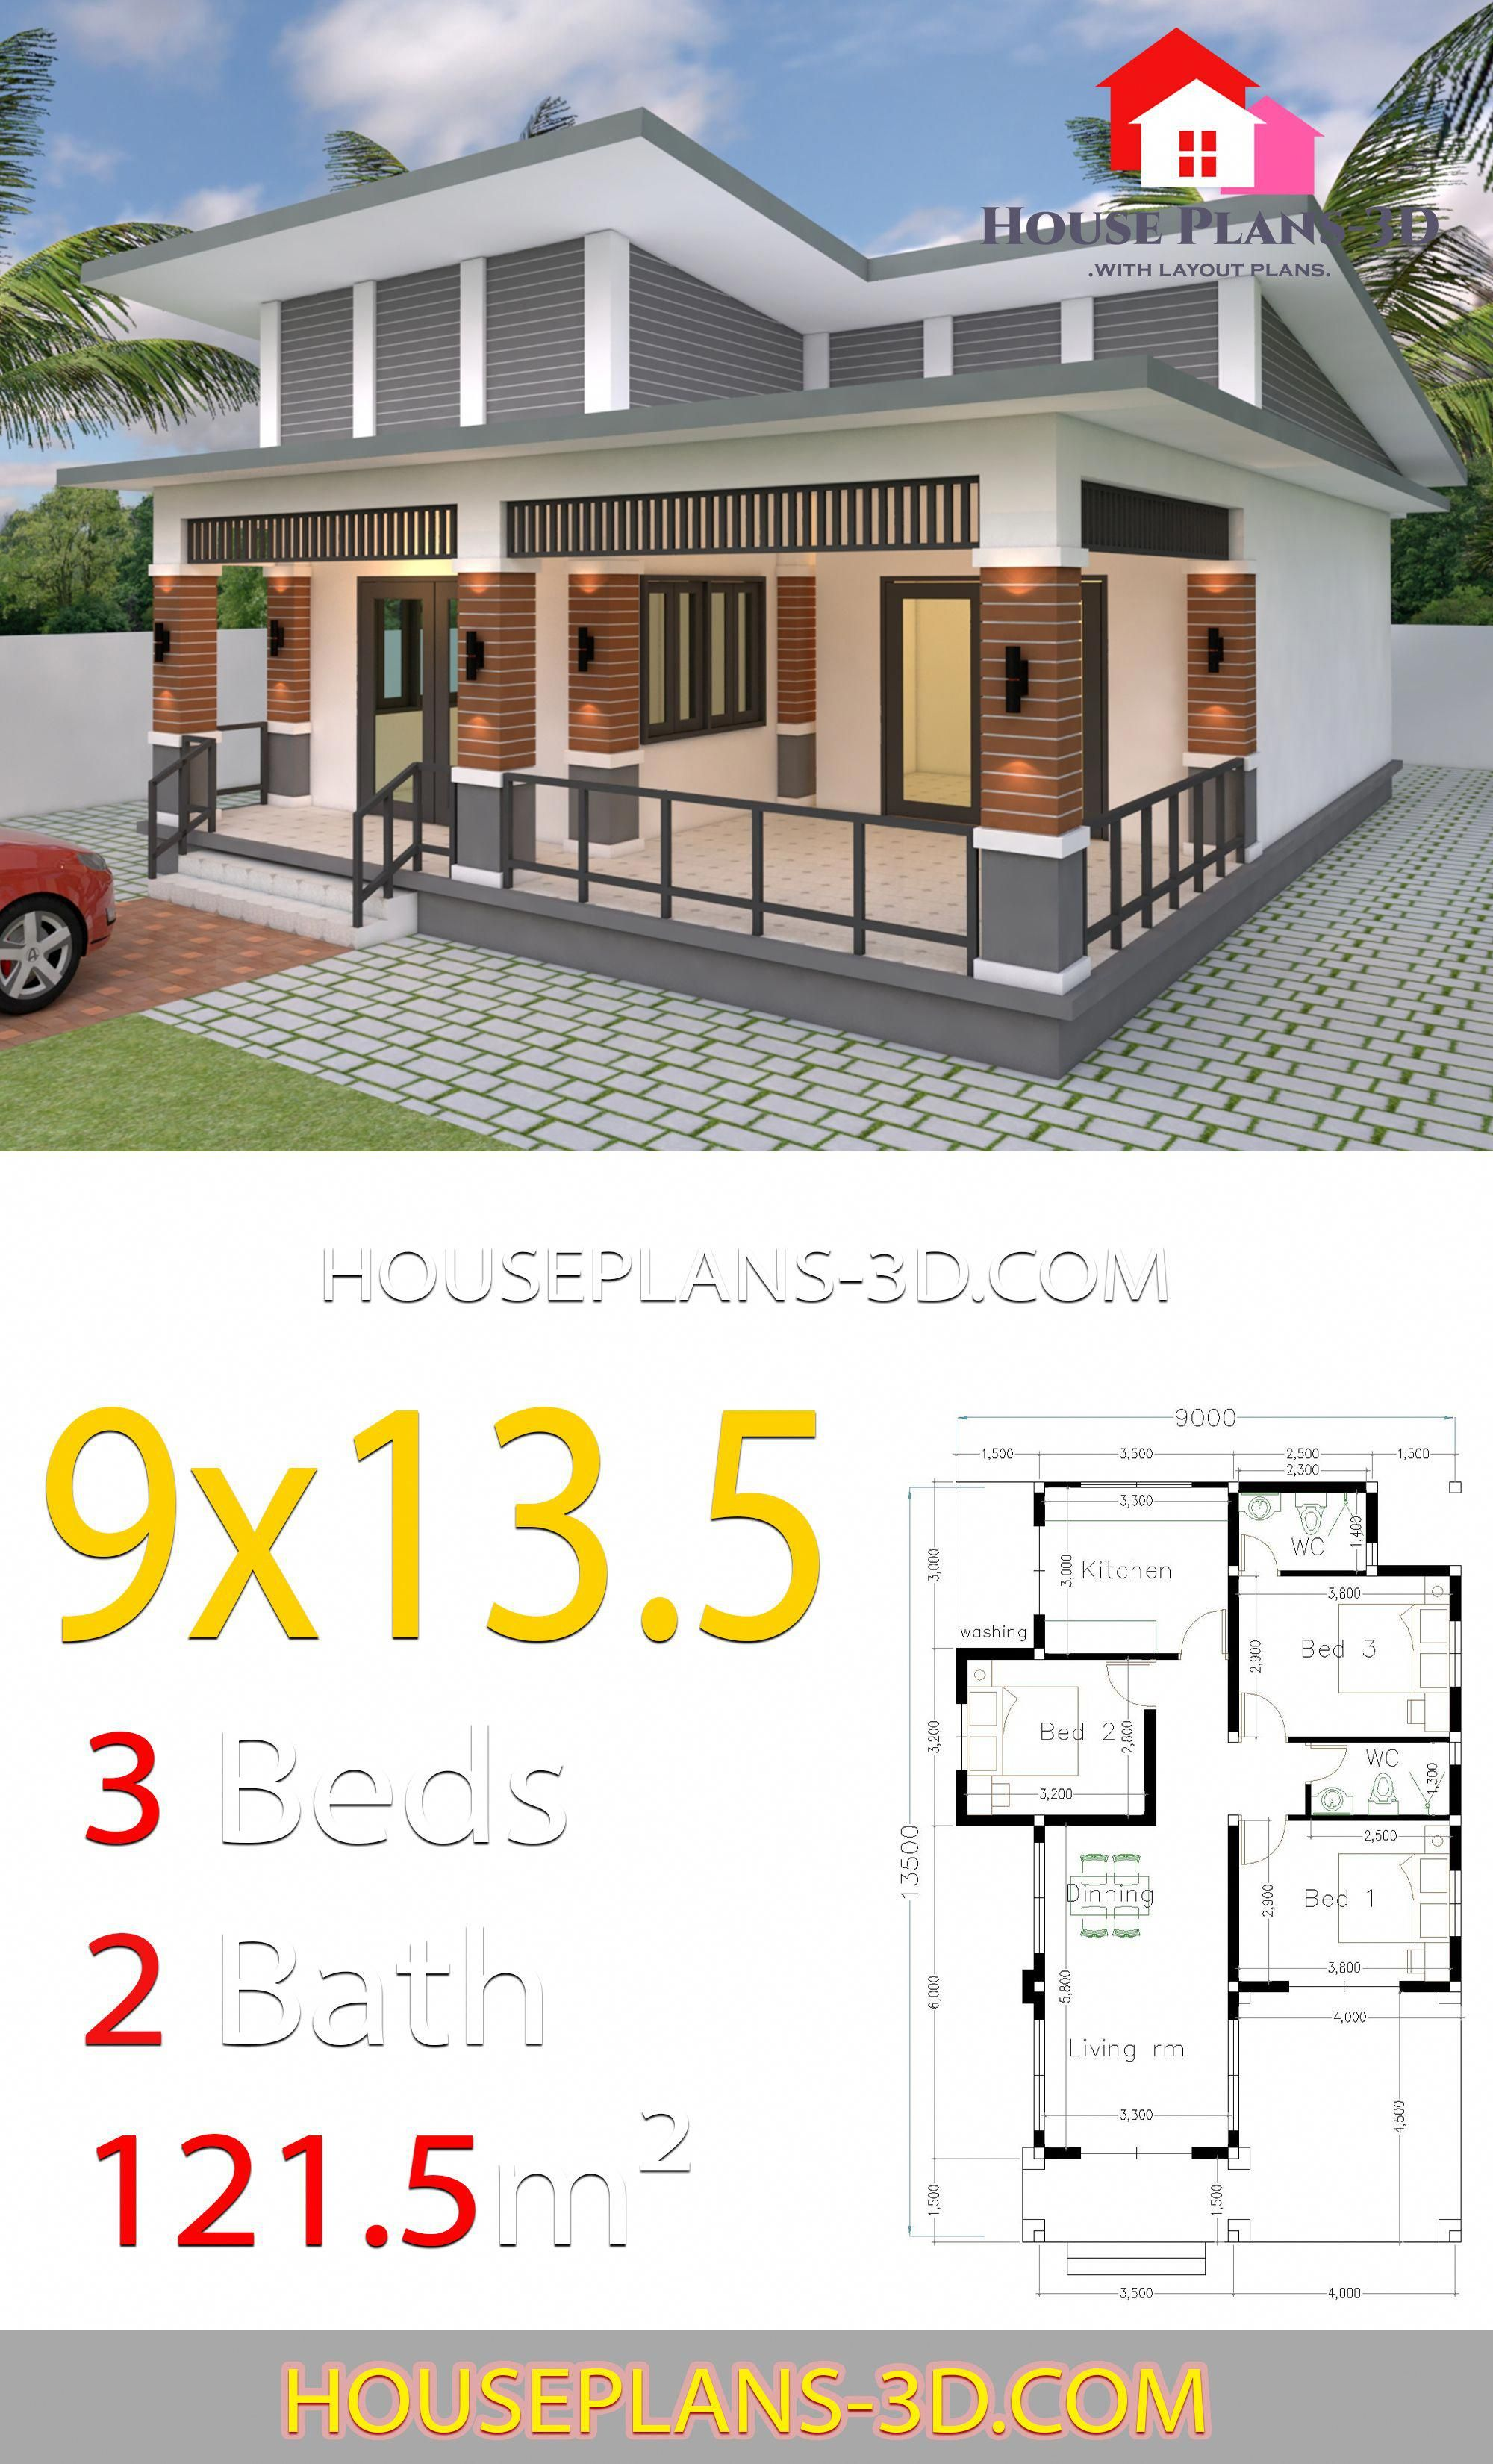 Pin by Ahmed Ali on bash in 2020 | House plans, House roof, My house plans